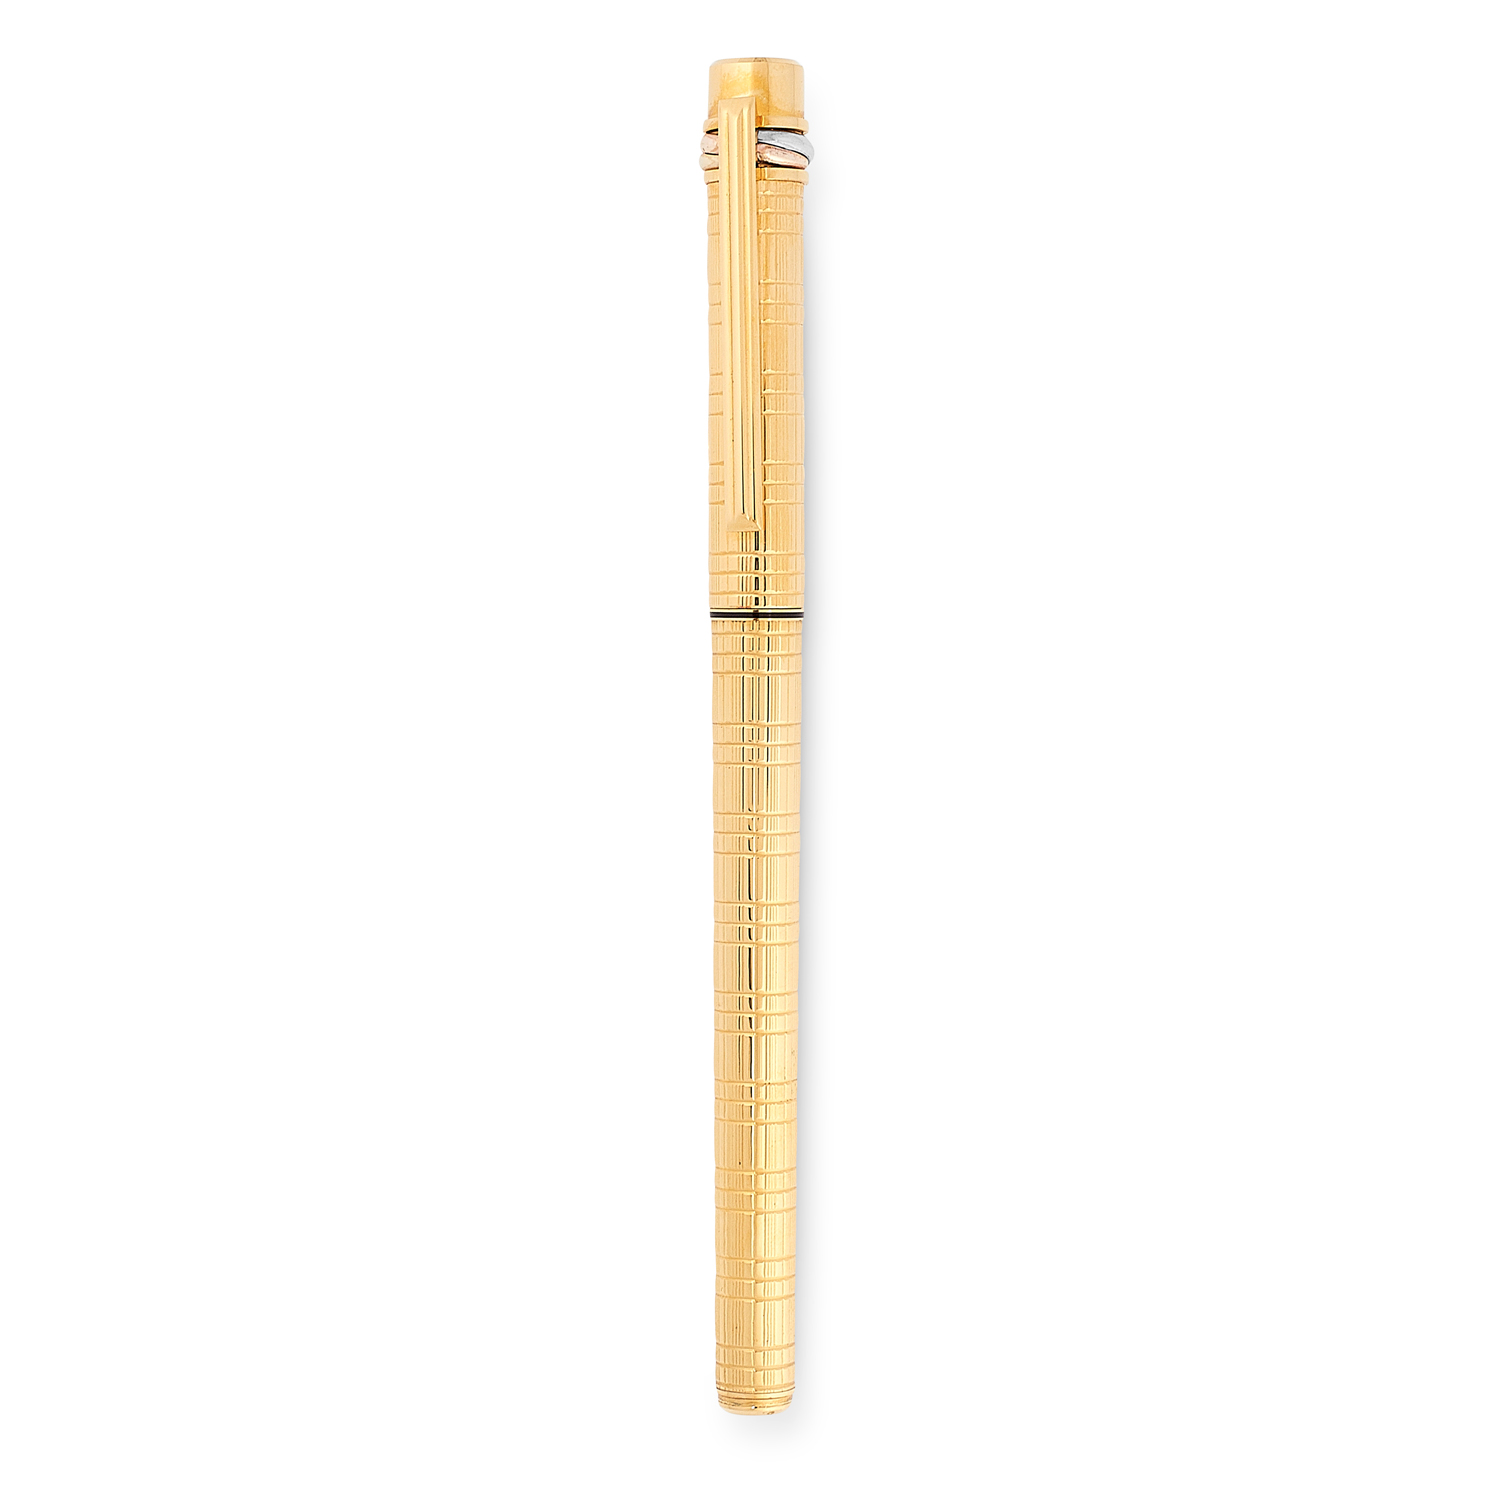 A TRINITY FOUNTAIN PEN, CARTIER in gold plate, in textured gold design, signed Cartier, 13.5cm / 5.